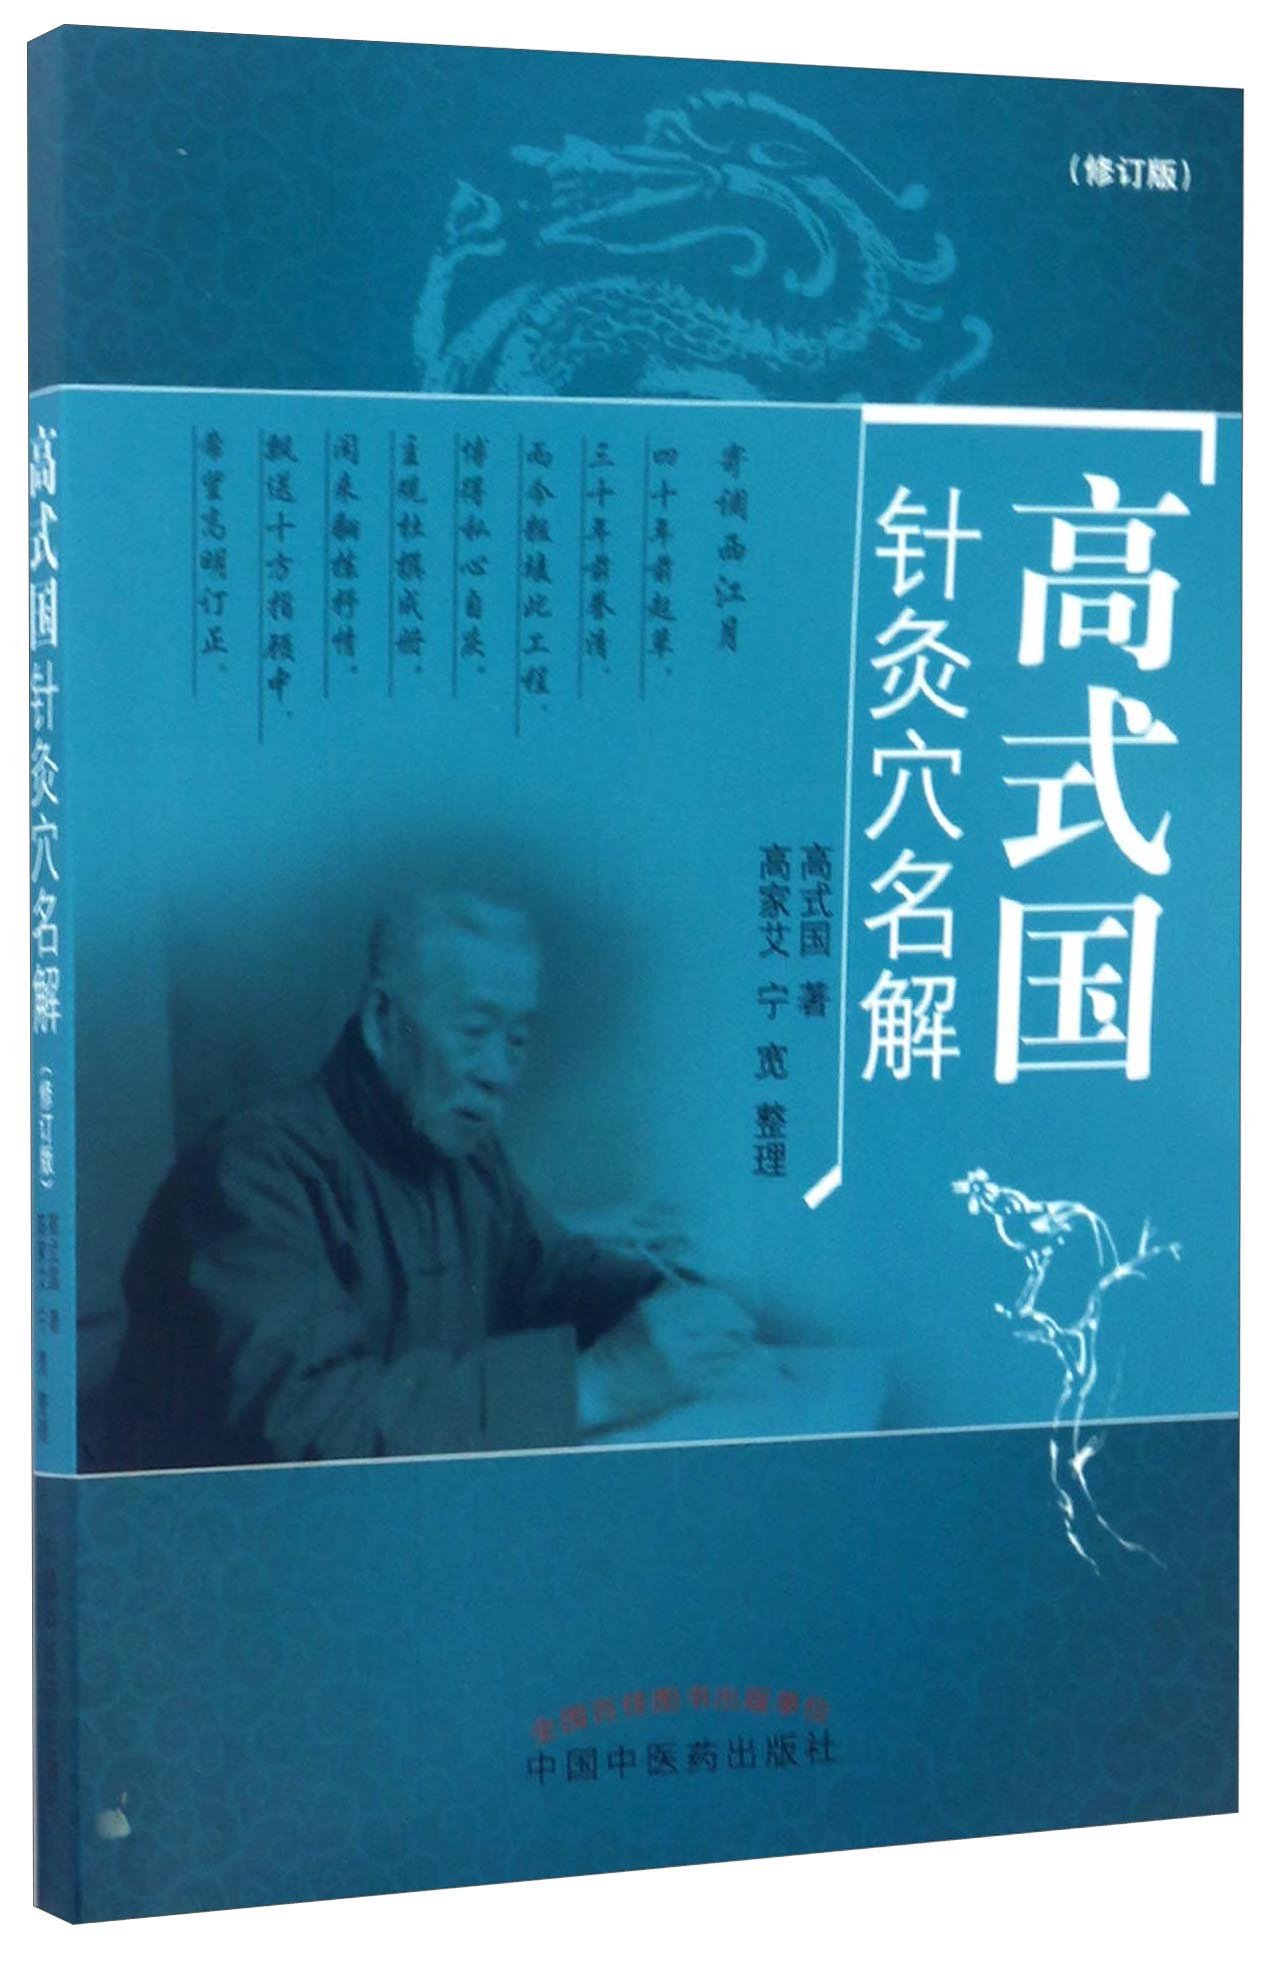 The Explanation Of Acupoint Names Of Chinese Acupuncture And Moxibustion (Revised Edition)